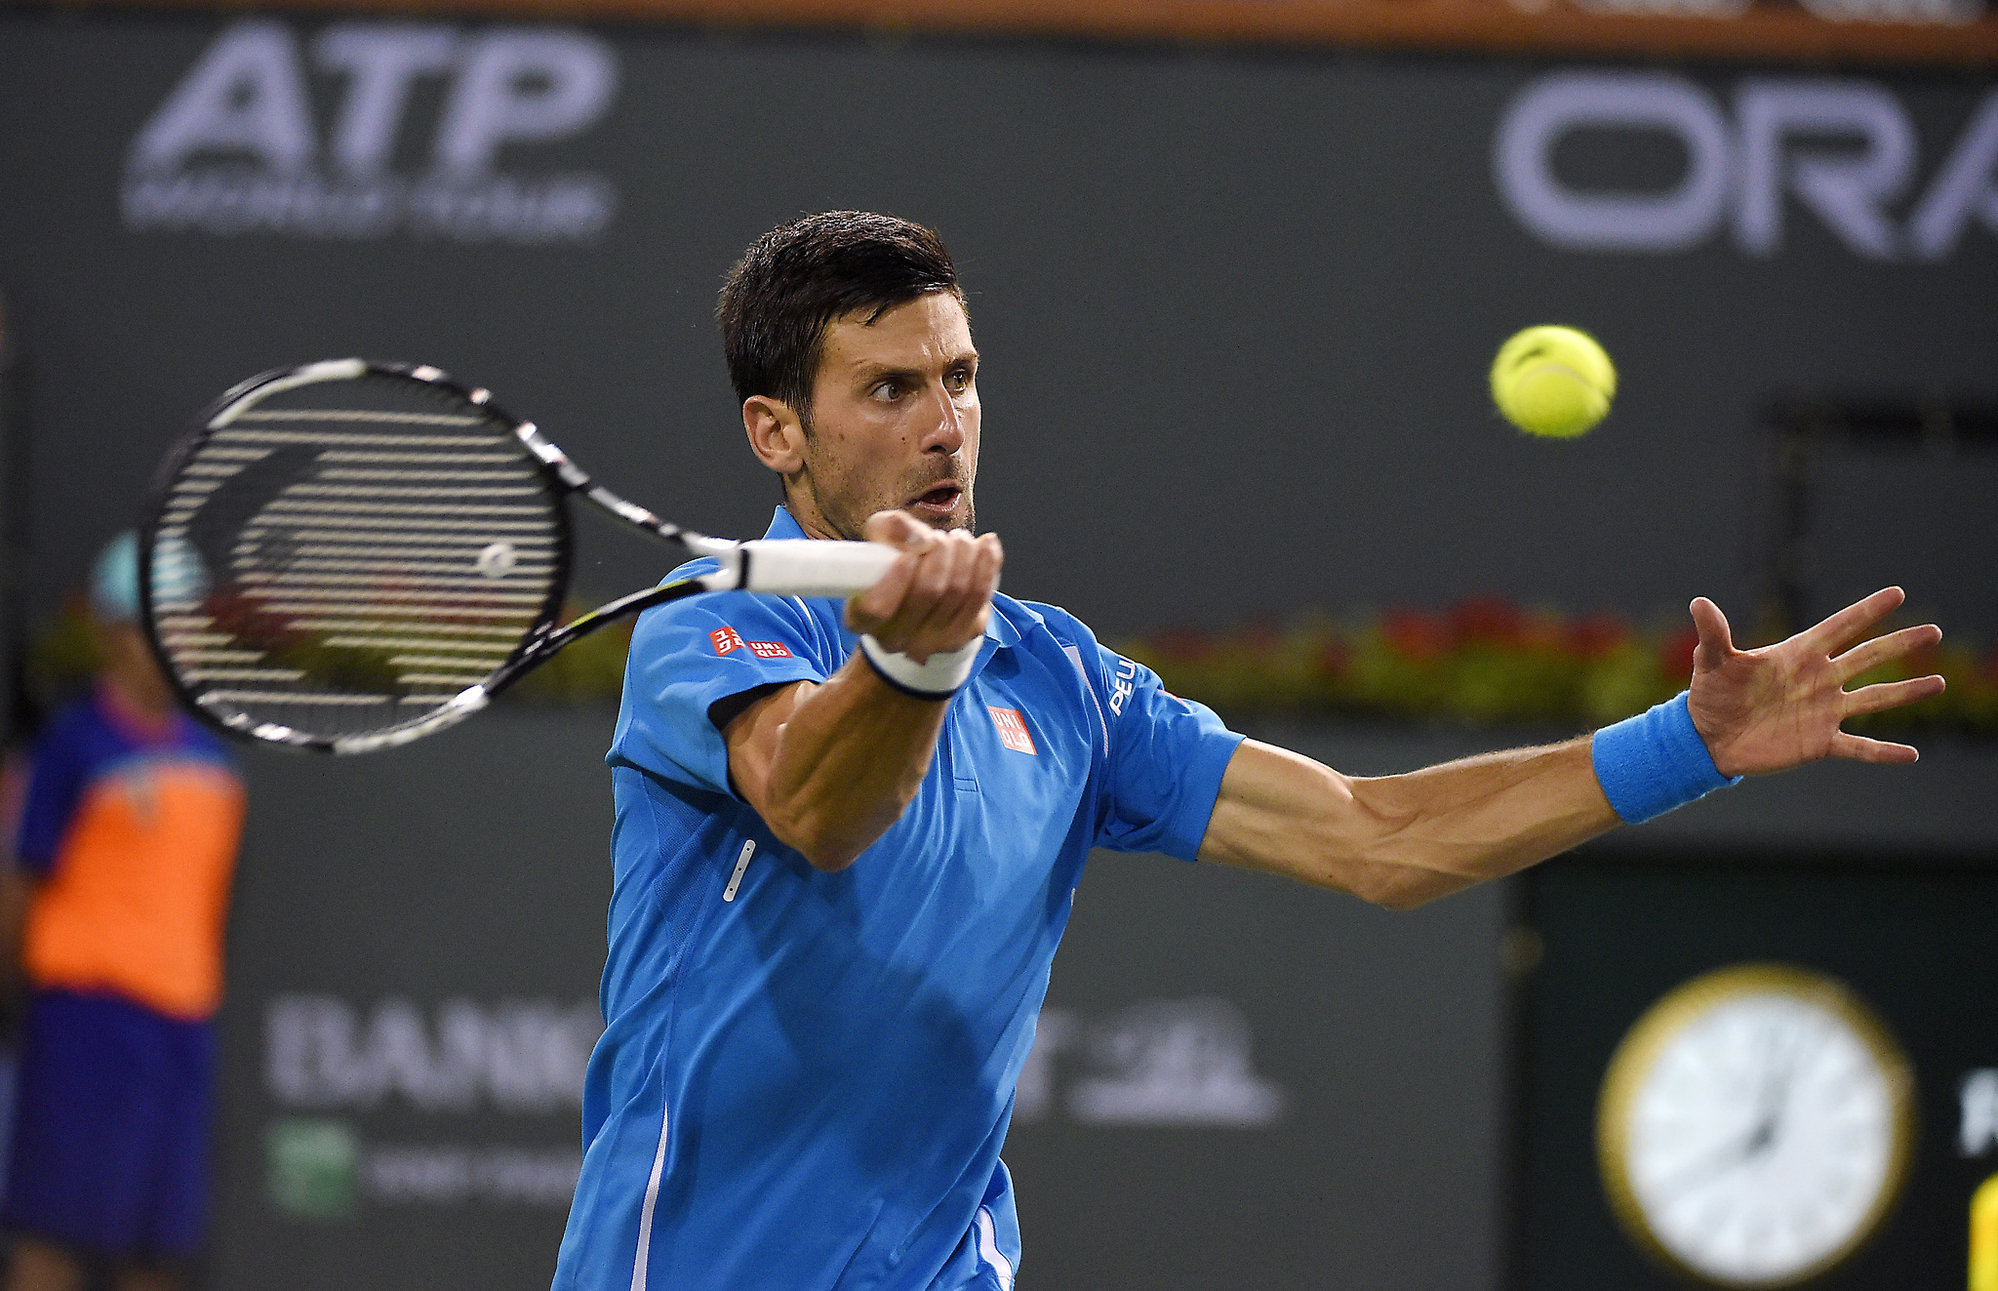 novak djokovic holding strong with 2016 indian wells quarterfinls set 2016 images